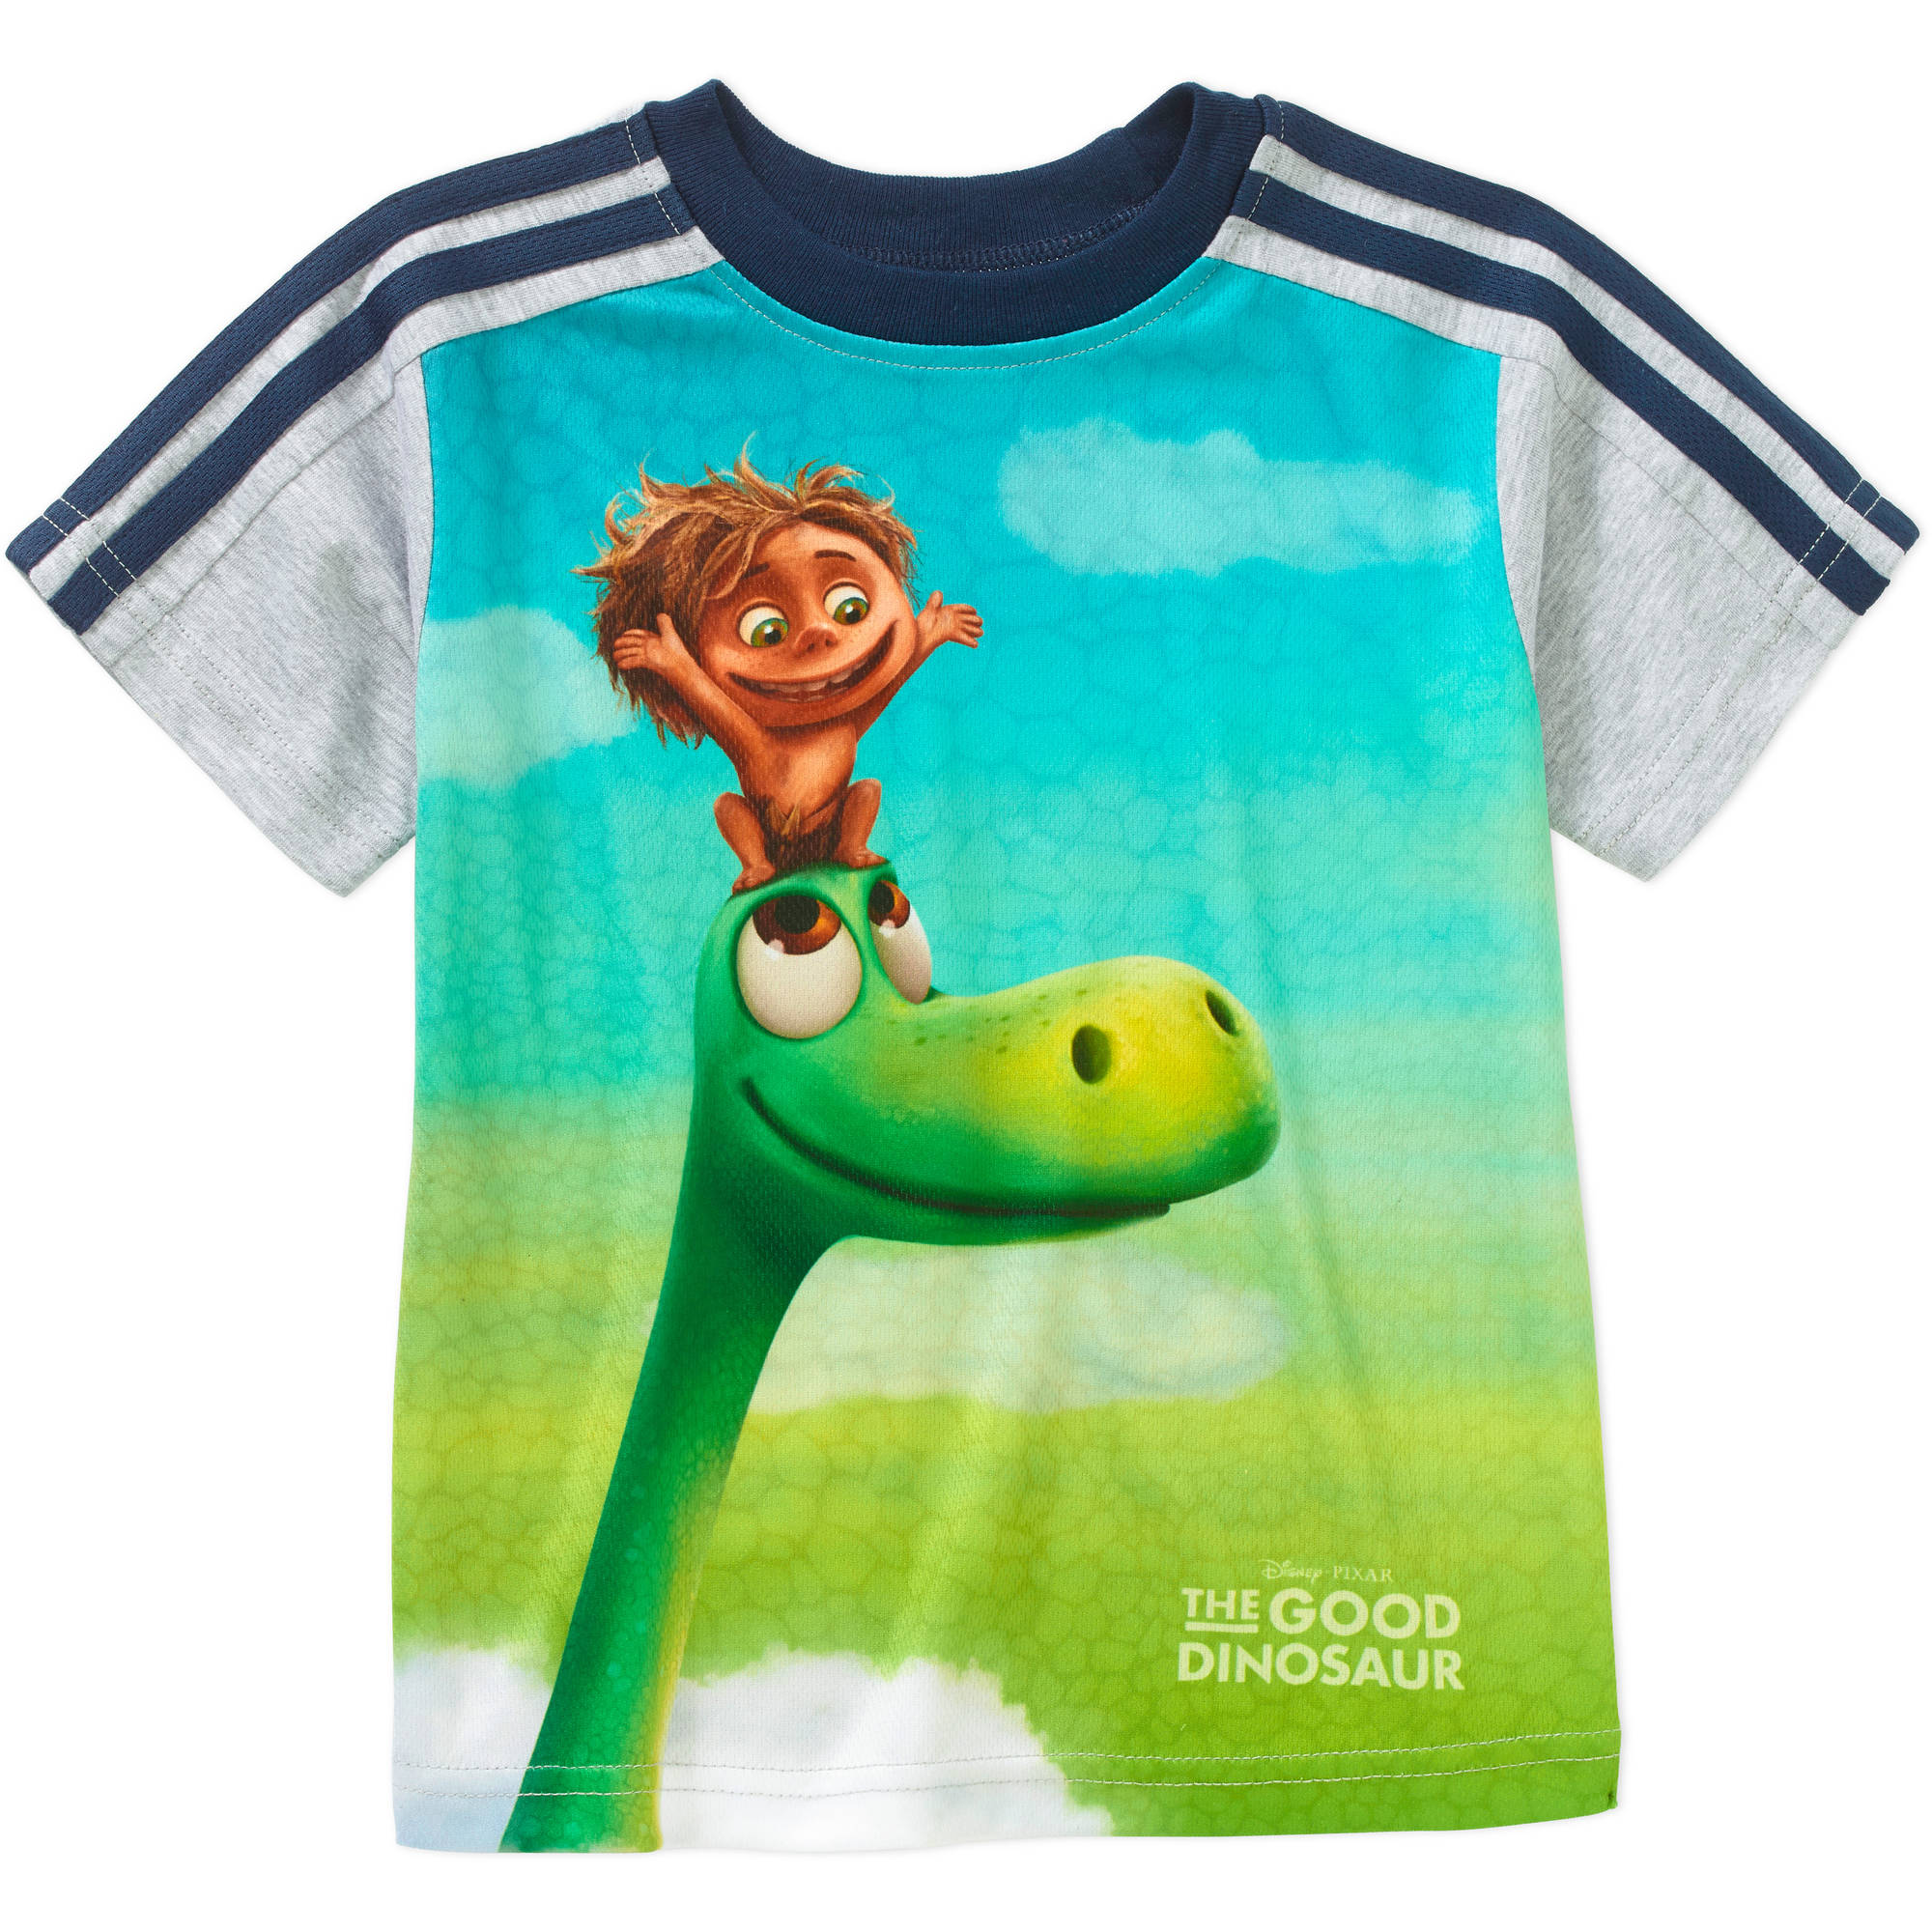 Disney The Good Dinosaur Toddler Boy Graphic Tee Shirt